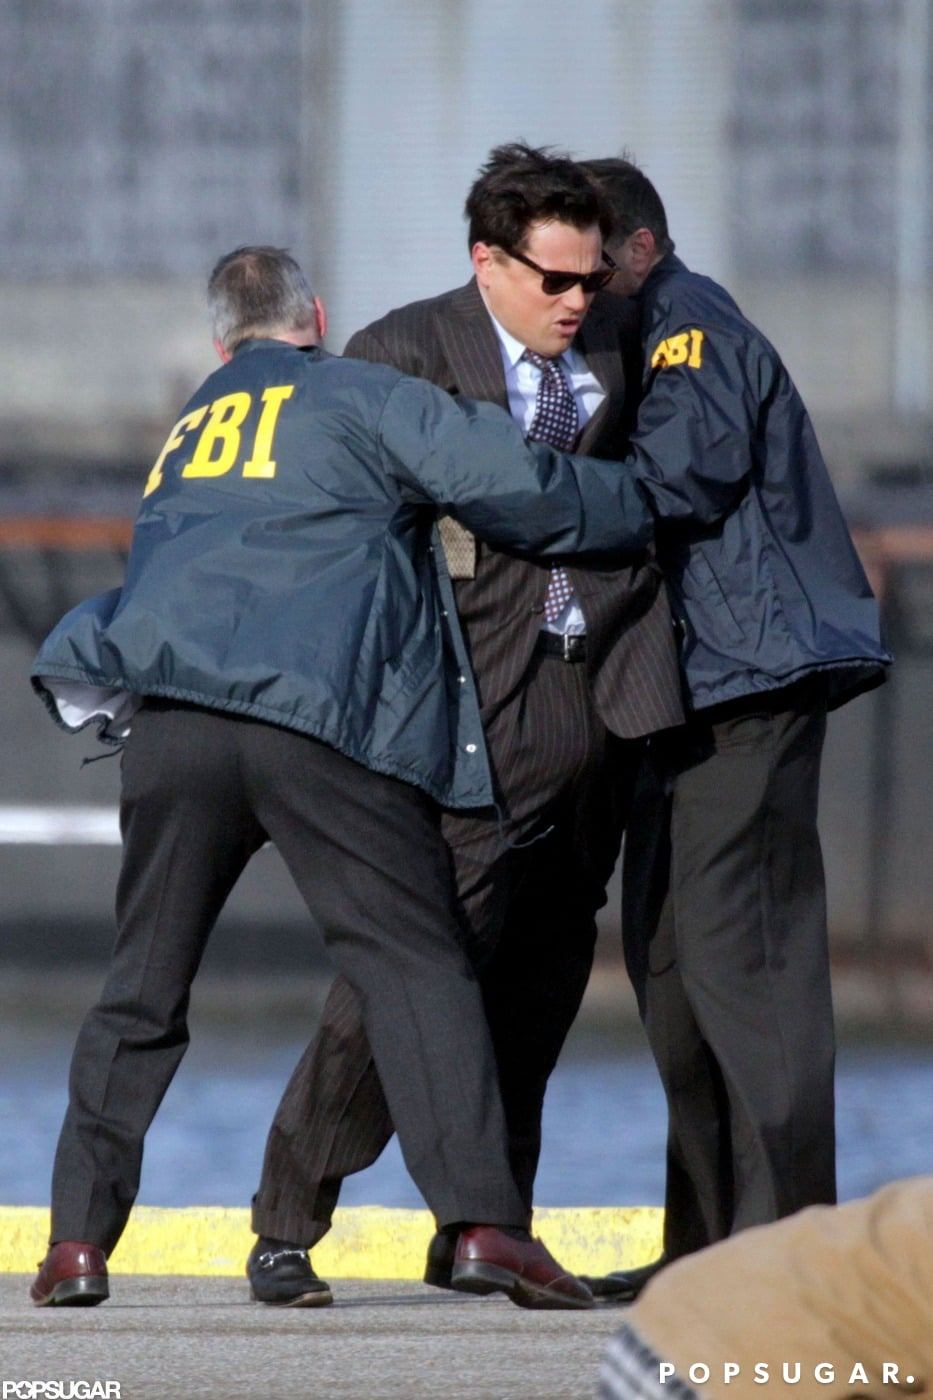 Leonardo DiCaprio Has a Run-In With the FBI on Set